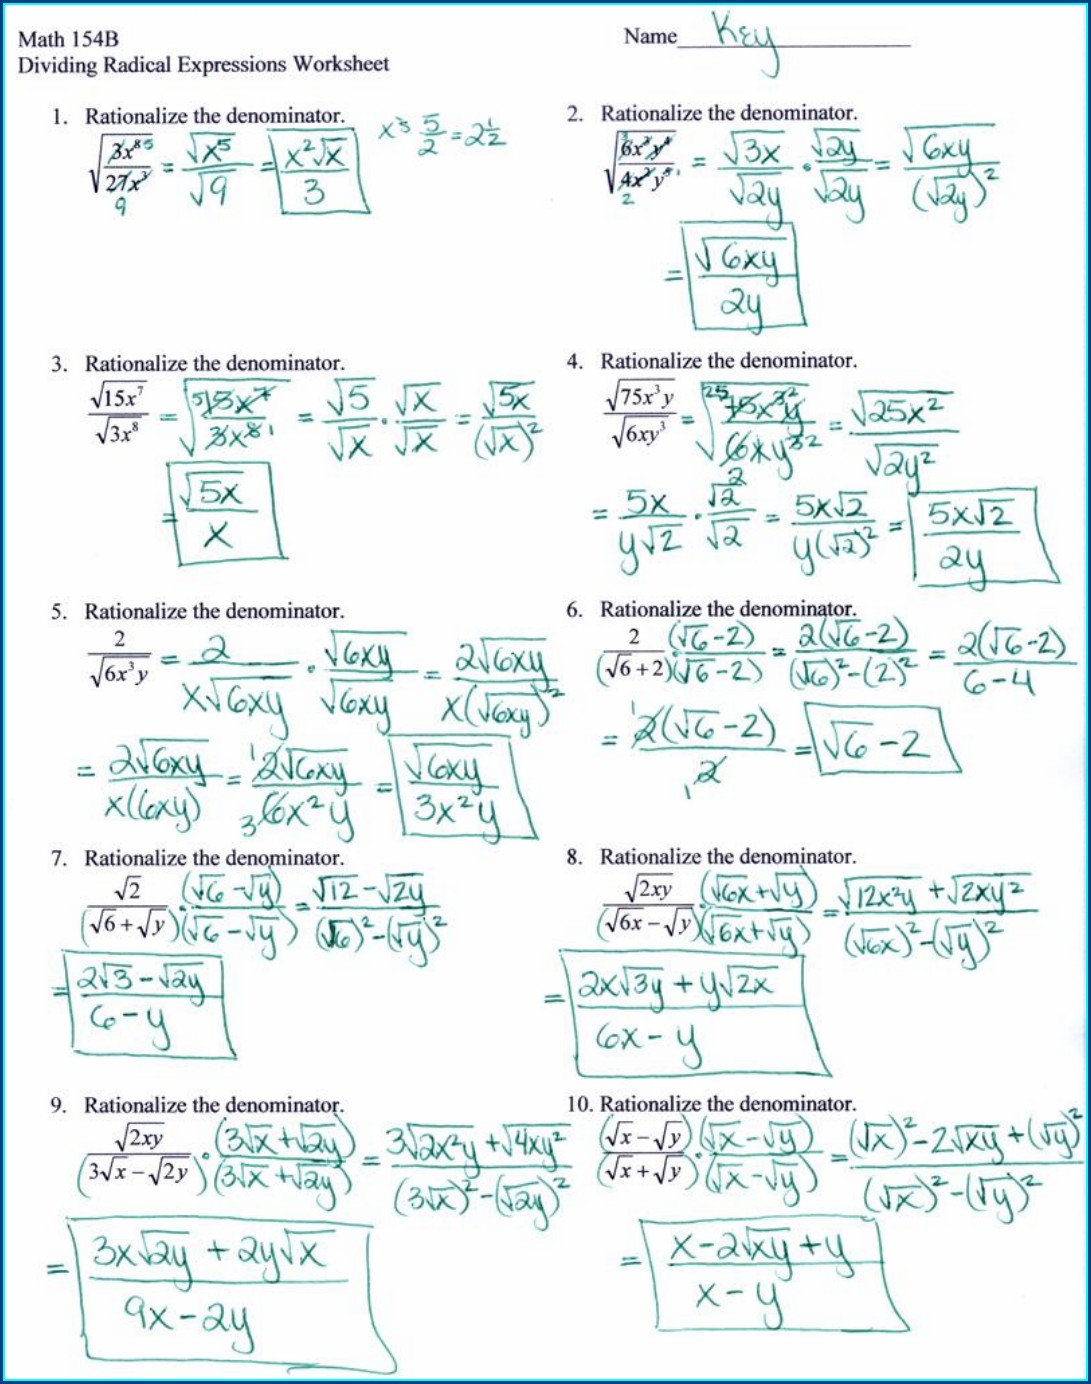 Math 154b Solving Using The Quadratic Formula Worksheet Answers